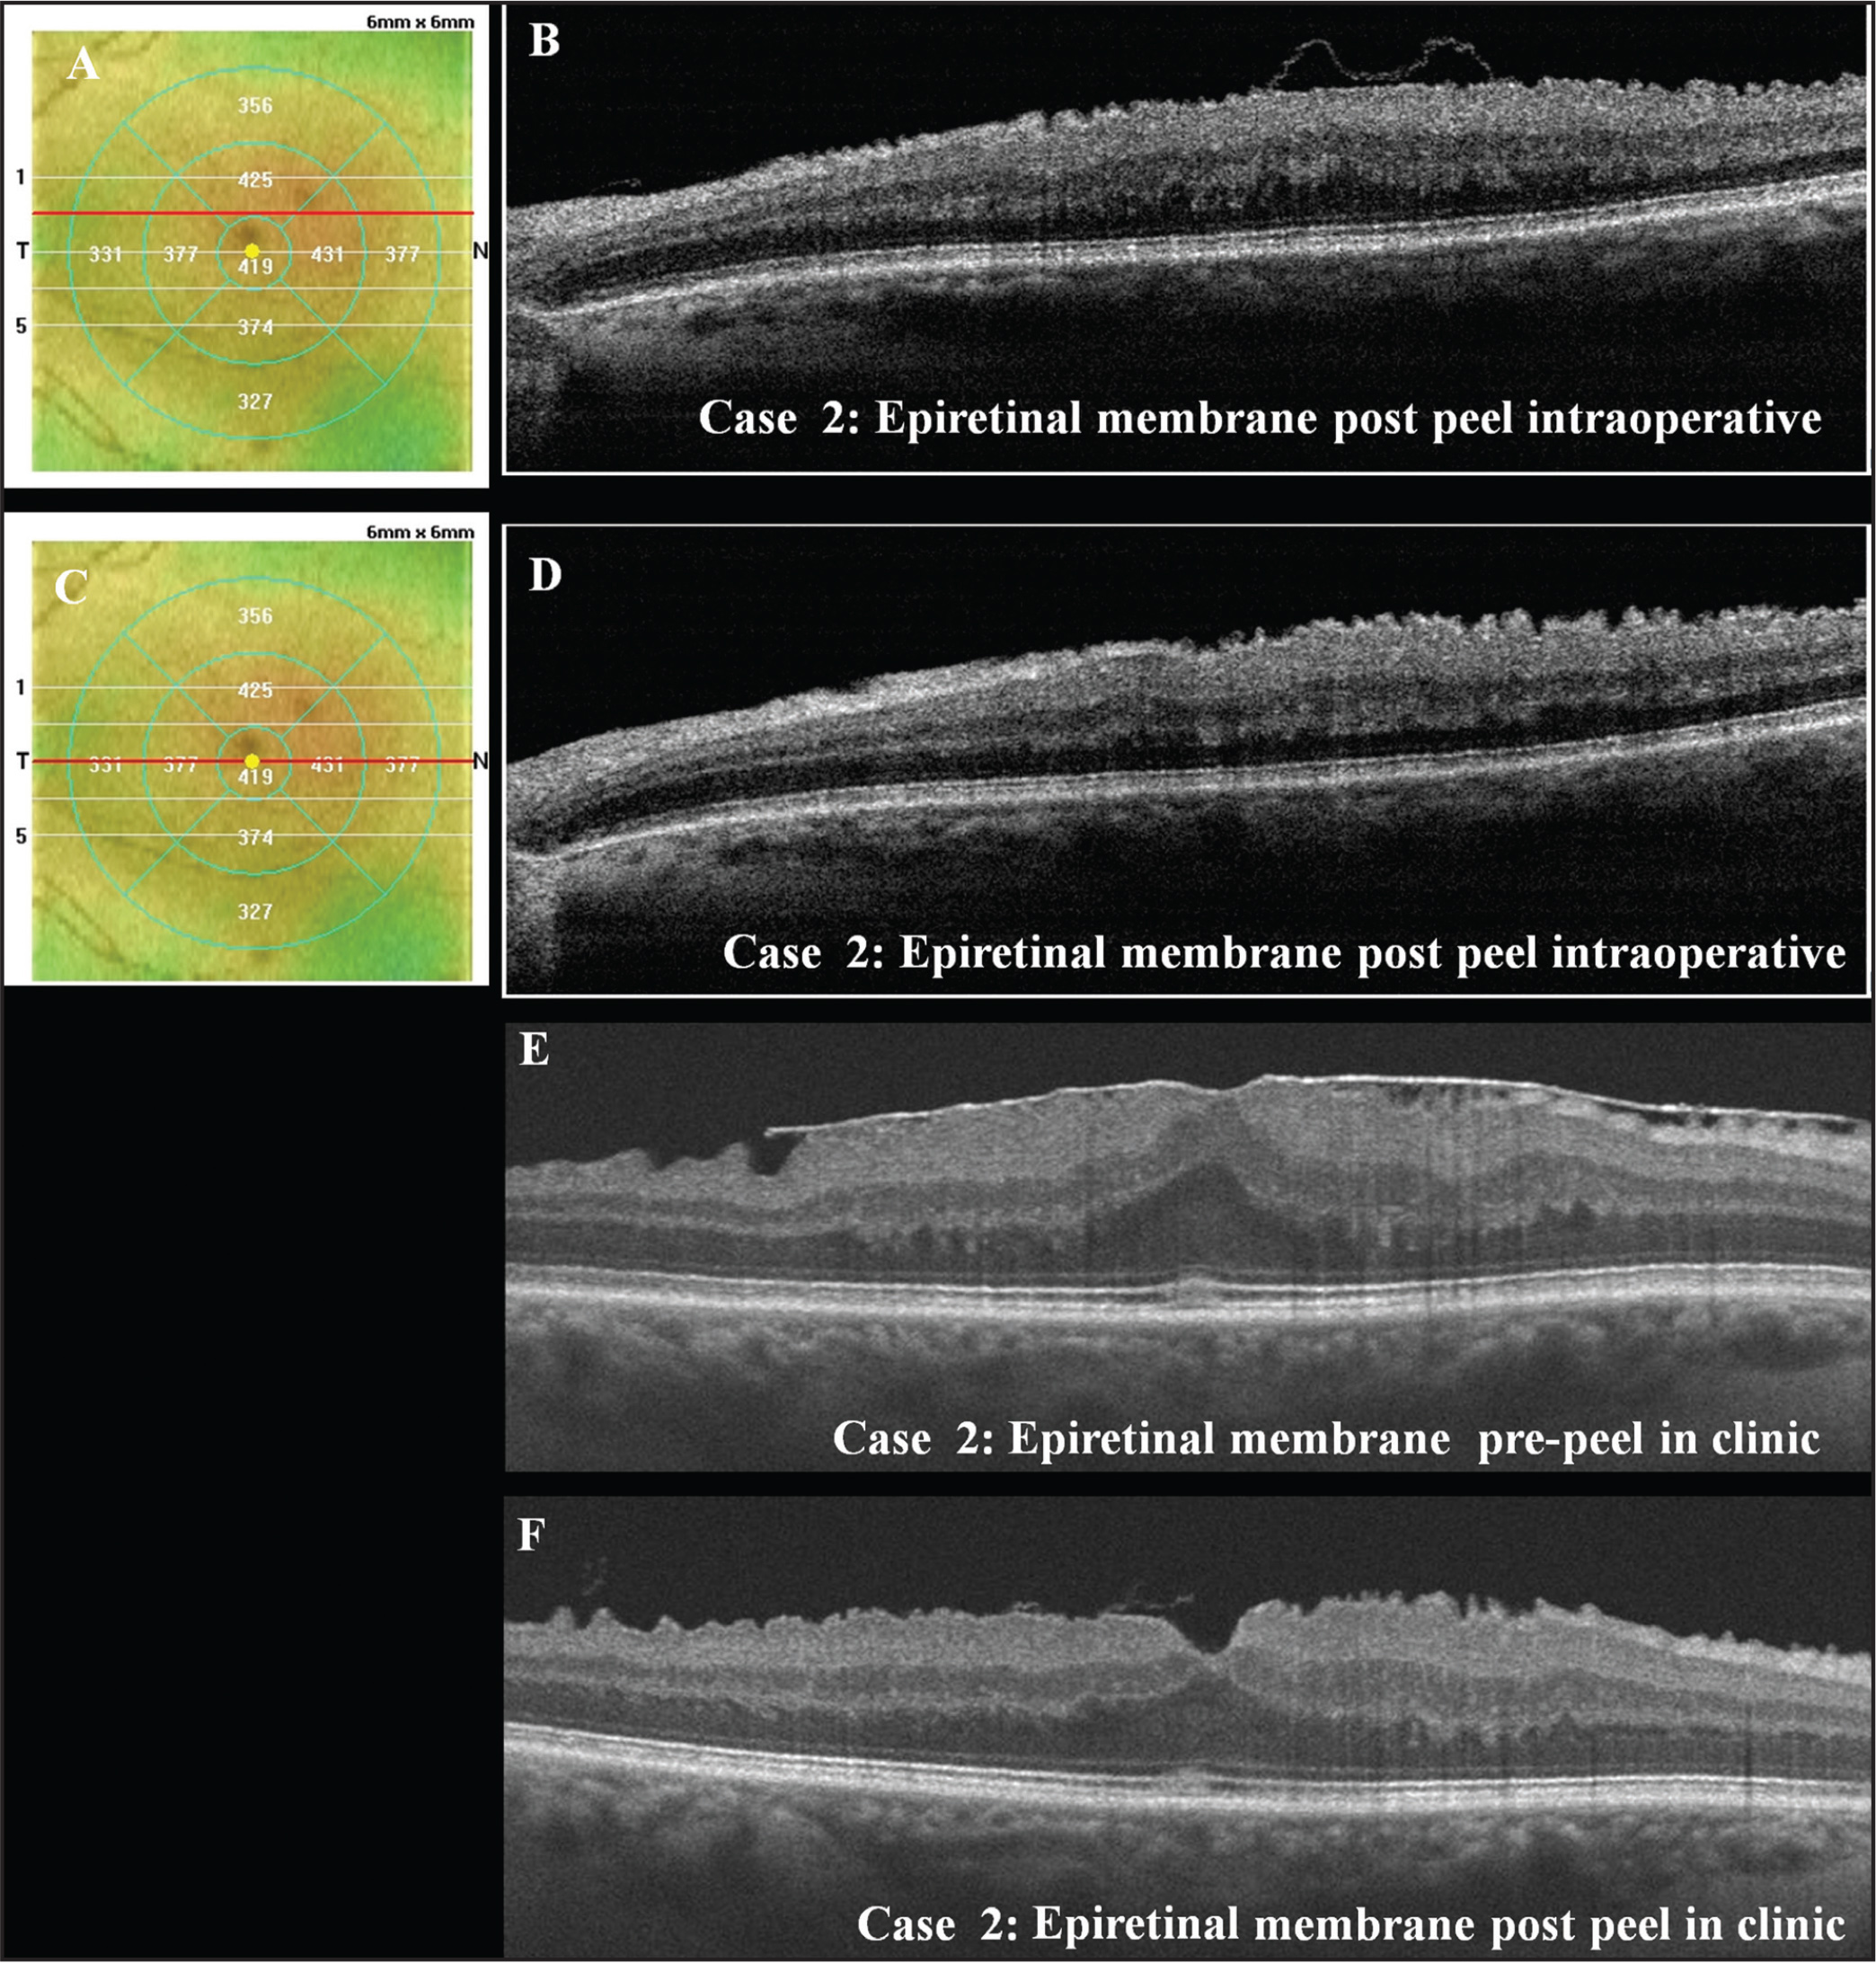 Case 2: Epiretinal membrane. (A) Intraoperative optical coherence tomography (iOCT) macular thickness map. Red line indicates the retinal location of the (B) iOCT high-definition raster scan. Note the residual inner retinal band of tissue. (C) iOCT macular thickness map. Red line indicates the retinal location of the (B) iOCT high-definition raster scan. Note the inner retinal changes. (E) Outpatient OCT taken before surgery. (F) Outpatient OCT taken postoperatively.